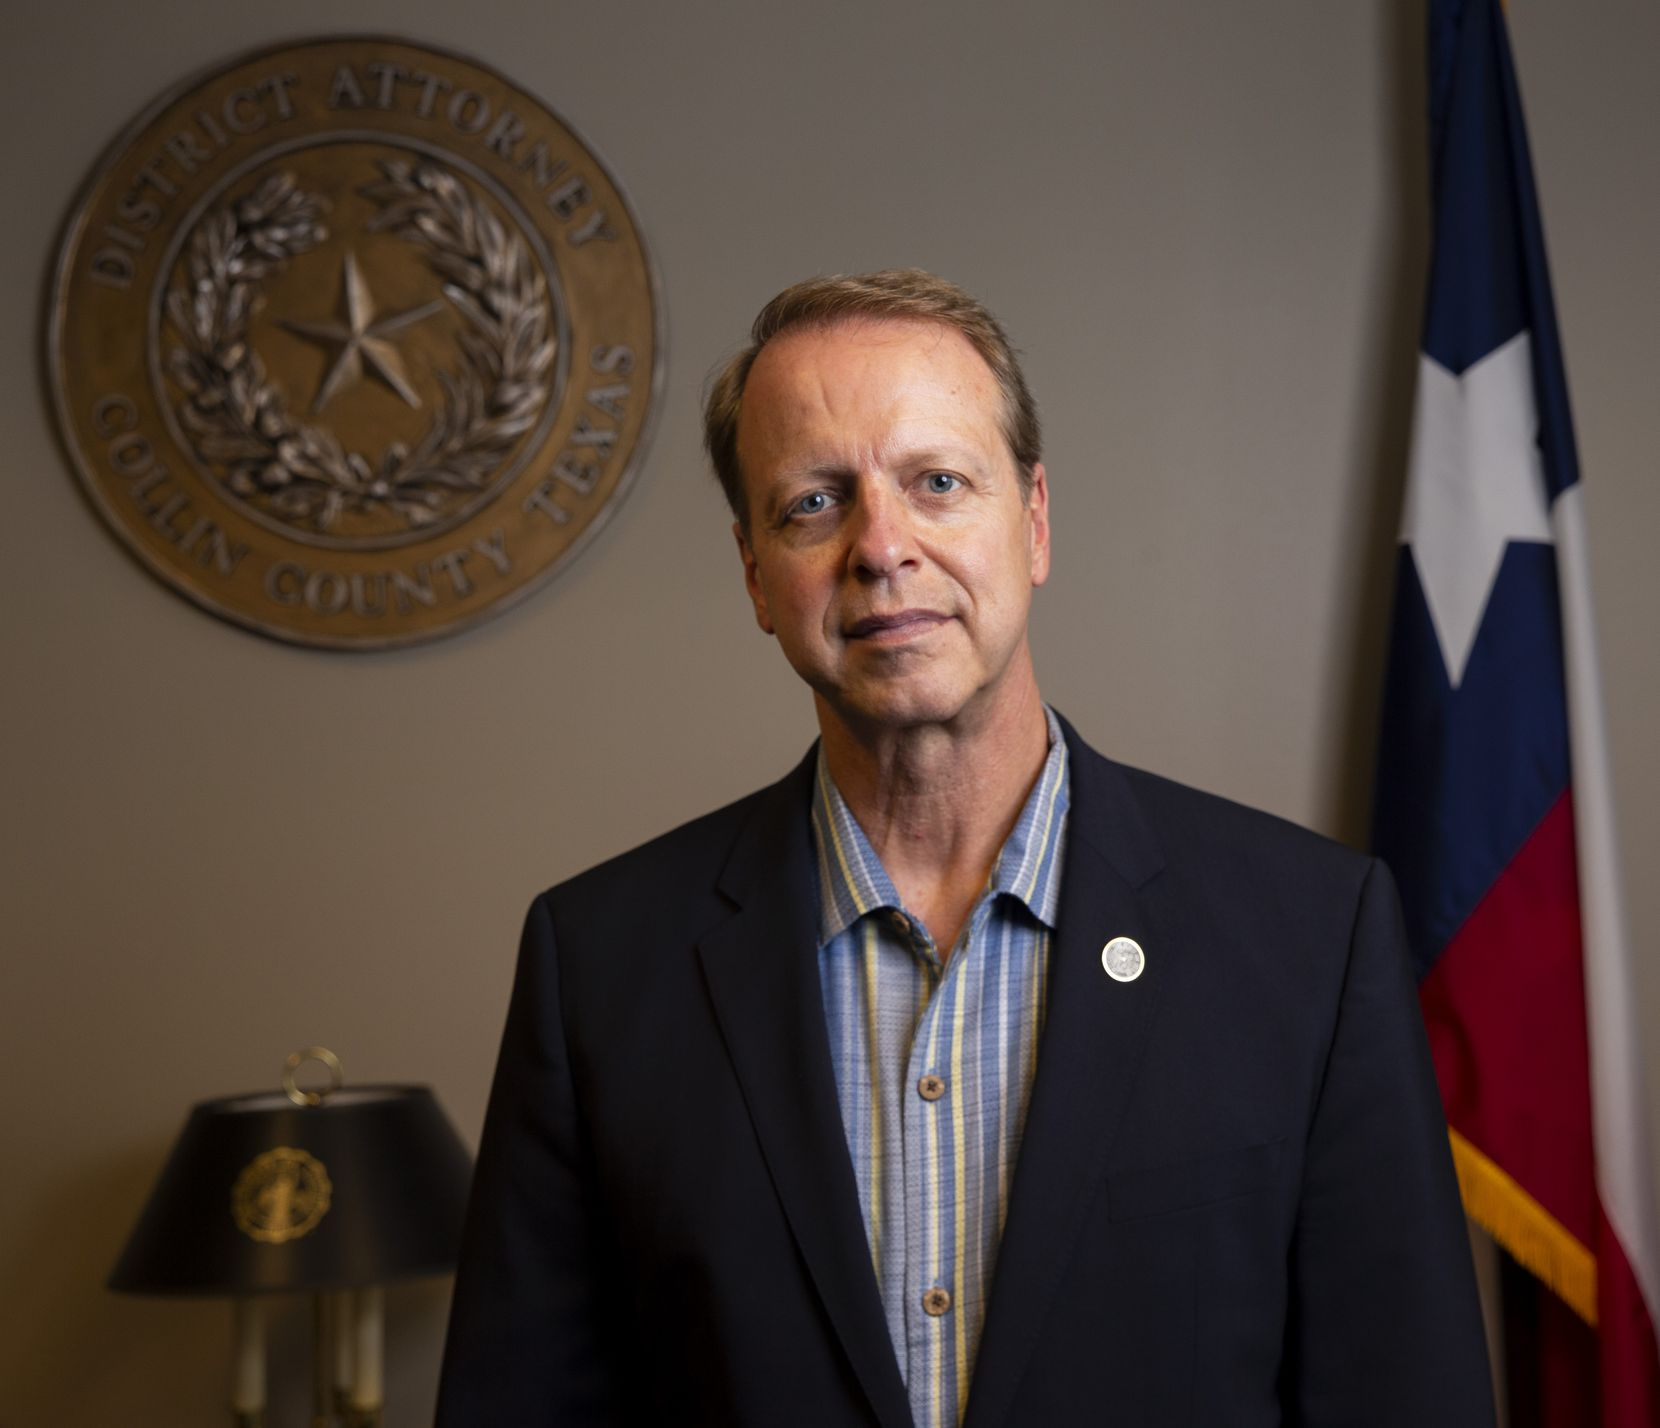 Collin County District Attorney Greg Willis has vowed to assemble a community-based working group that a grand jury recommended to study ways to safety deal with mentally ill people.